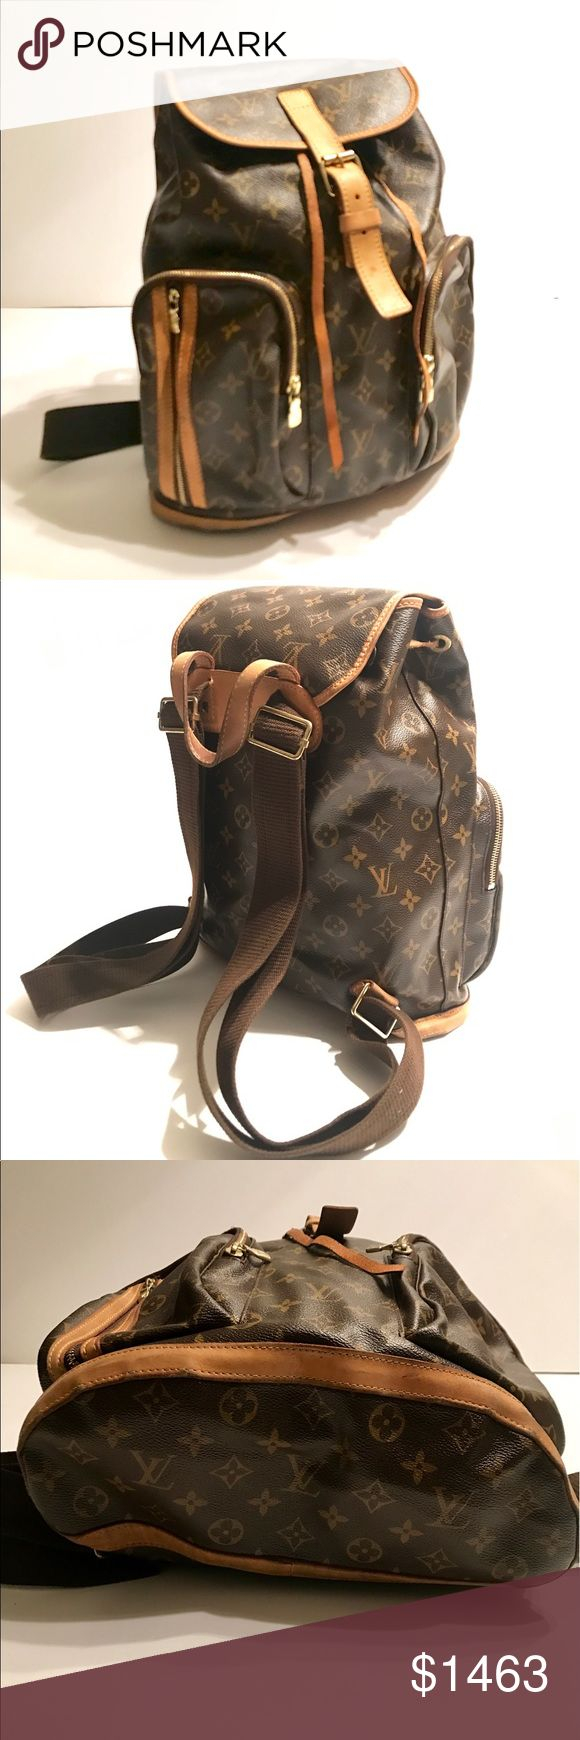 louis vuitton used bags. louis vuitton monogram bosphore backpack used bags backpacks